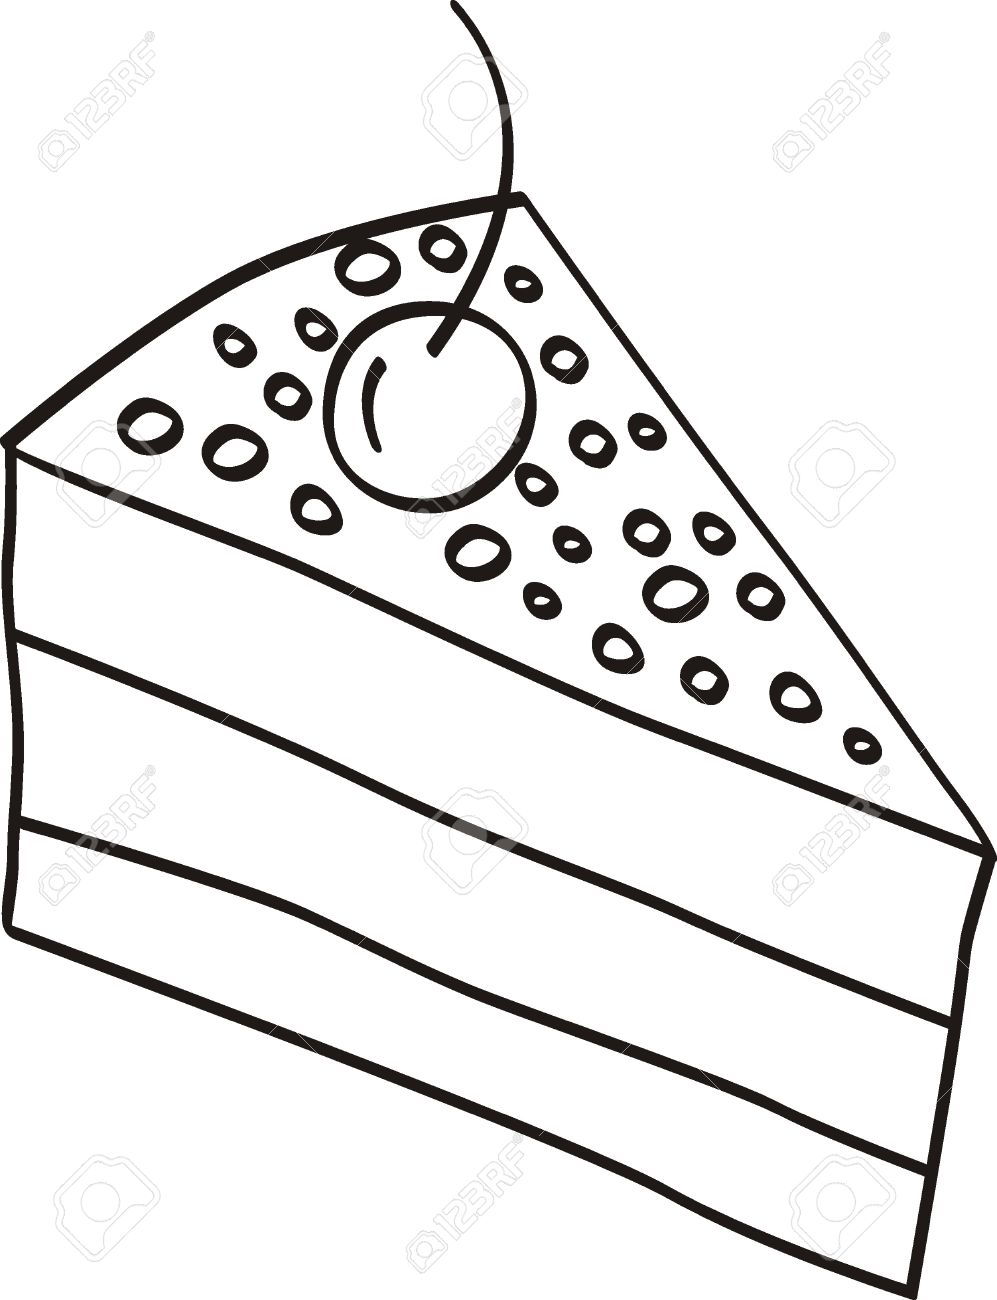 997x1300 Piece Of Cake Doodle Royalty Free Cliparts, Vectors, And Stock